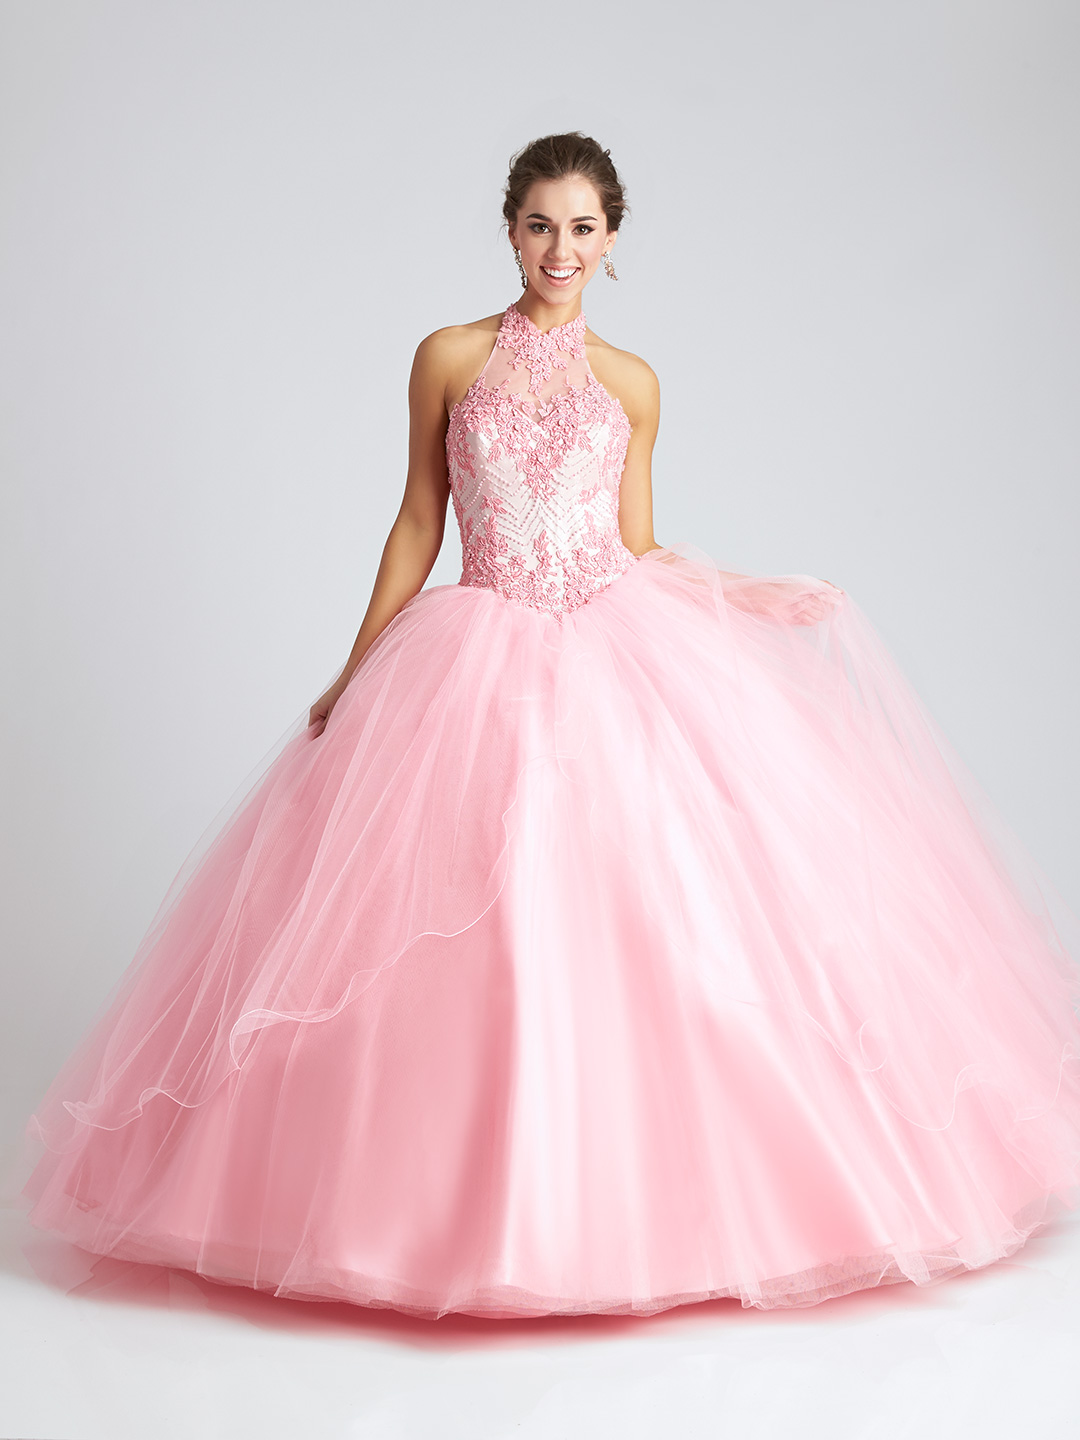 Allure Q542F-Blush-Quinceanera